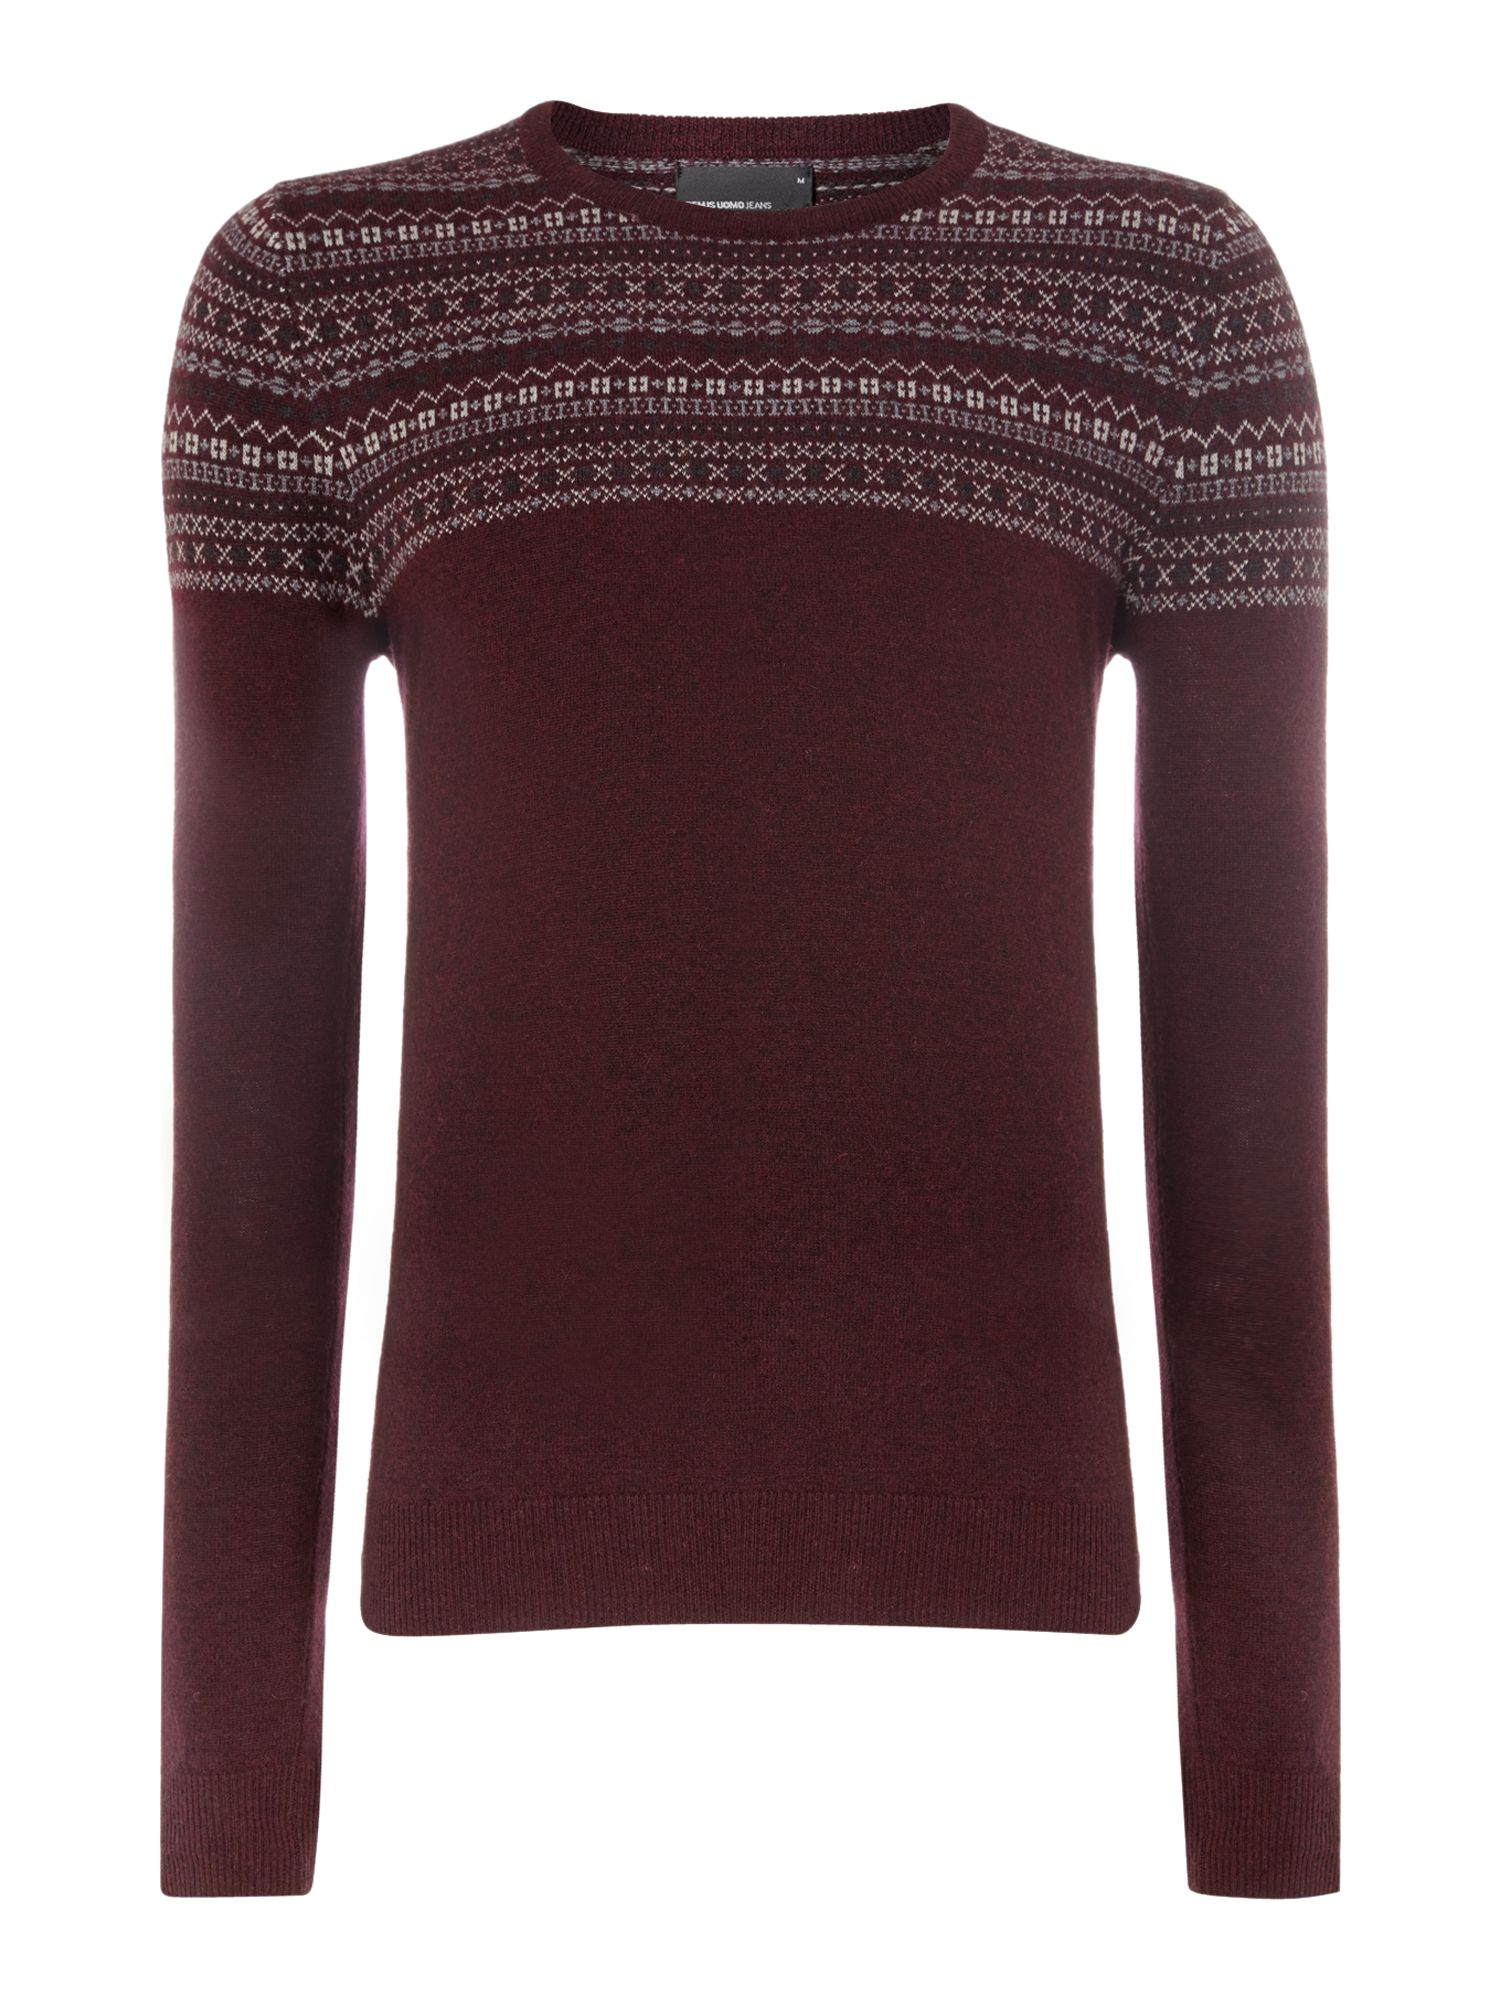 1/4 panelled fairisle sweater